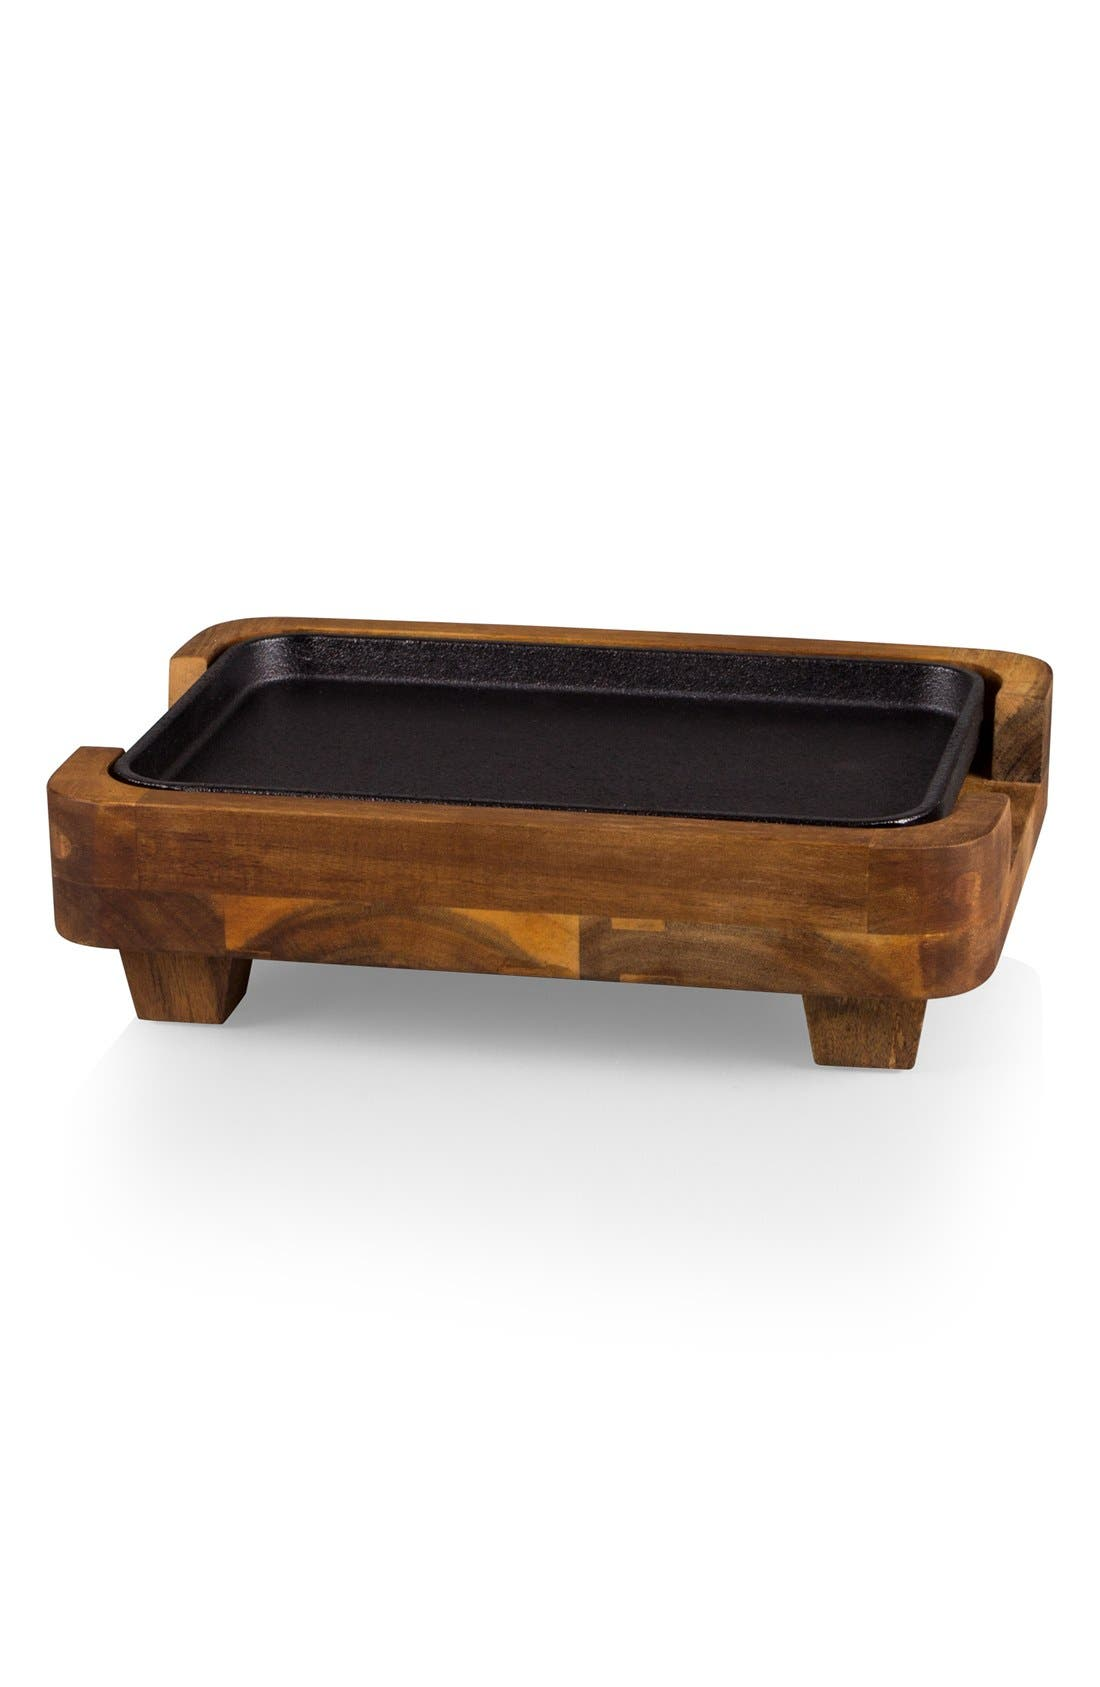 Alternate Image 1 Selected - Picnic Time Small Raccolta Cast Iron Warming Tray